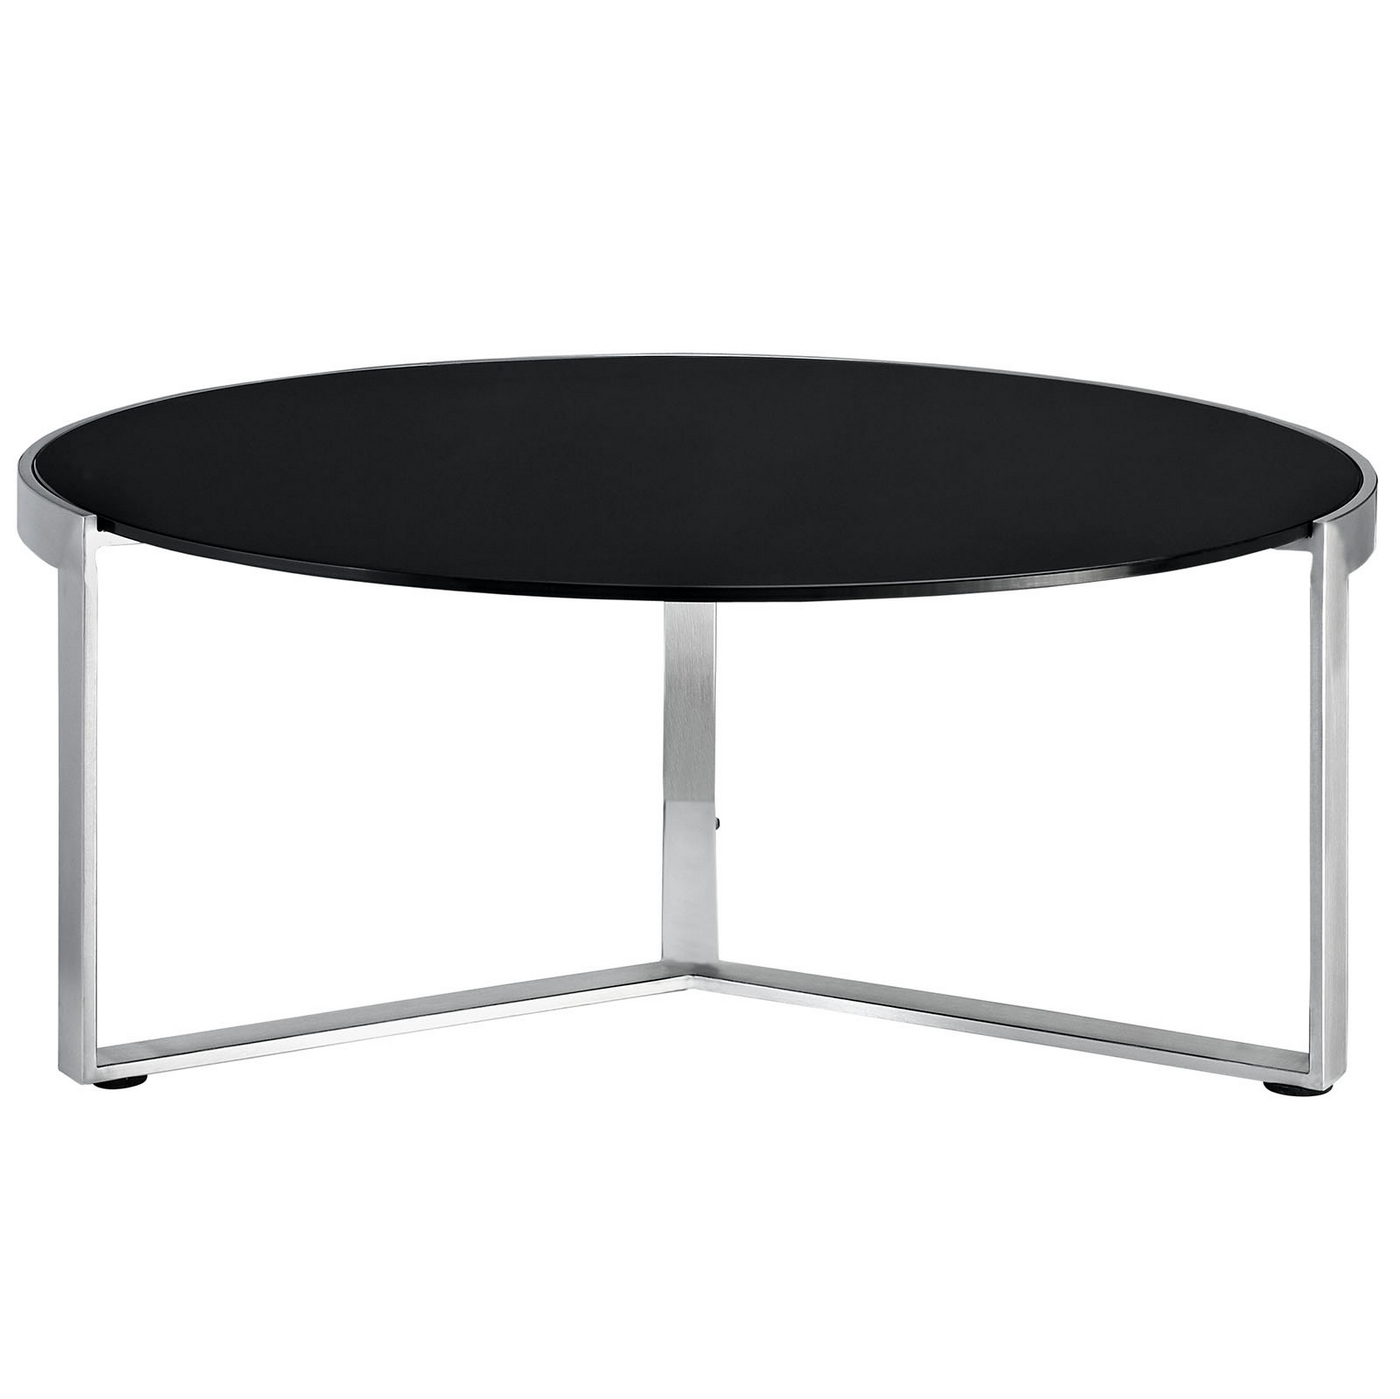 Disk Industrial Glass Top Round Coffee Table W Stainless Steel Base Black